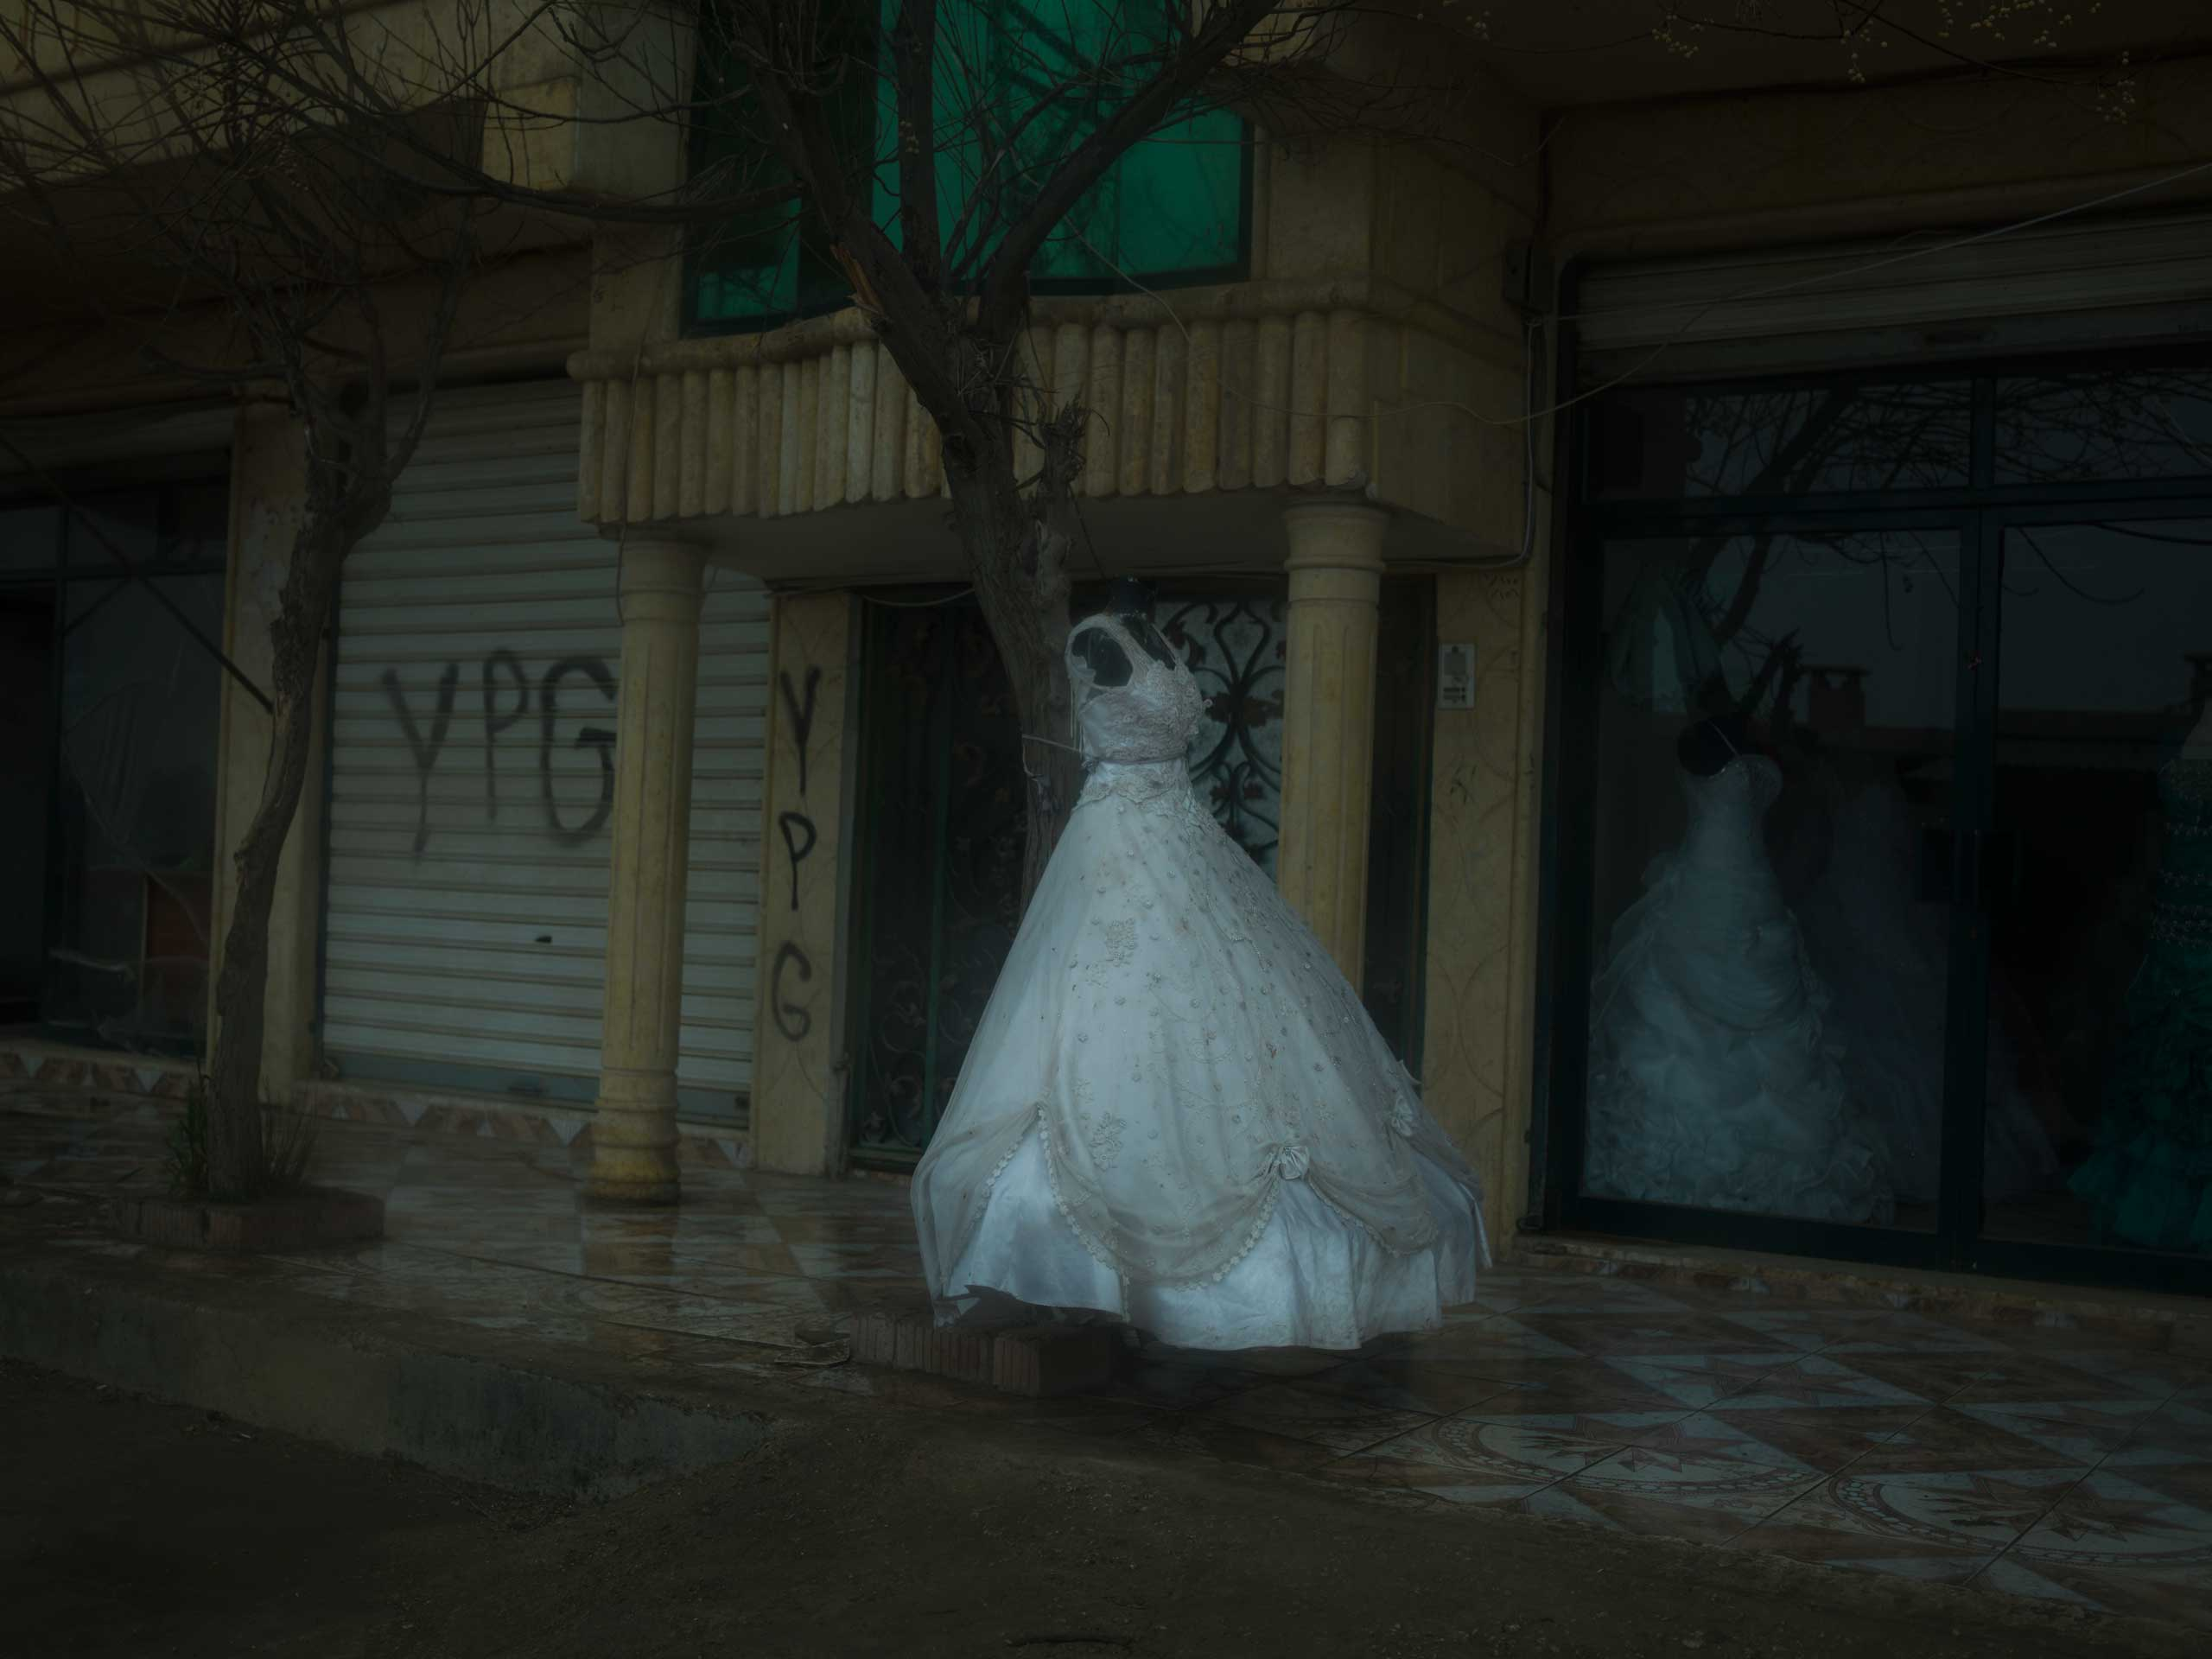 A wedding dress outside a bridal shop in a town near Qamishlou, Syria. YPG graffiti can be seen on the walls of adjacent buildings. YPJ and YPG members are neither allowed to marry, nor can they have sexual relationships, according their ideology.